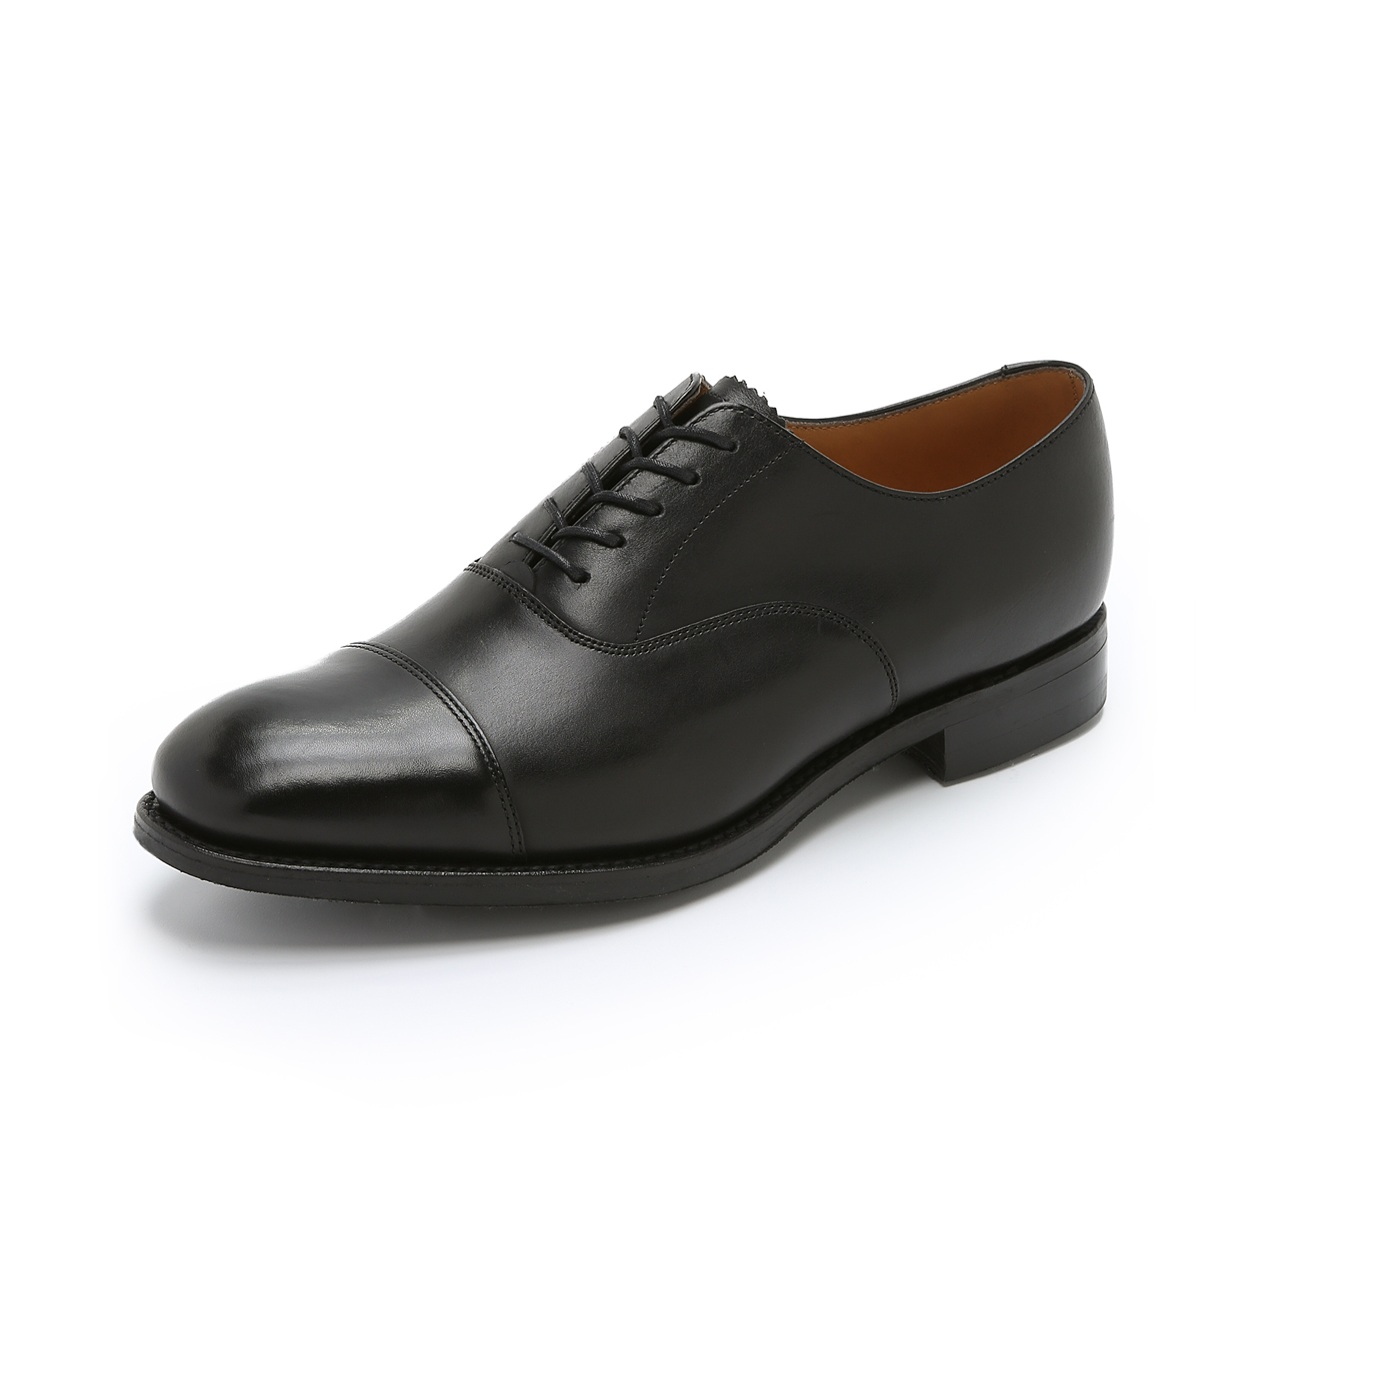 loake 1880 oxford noir chaussure pour homme